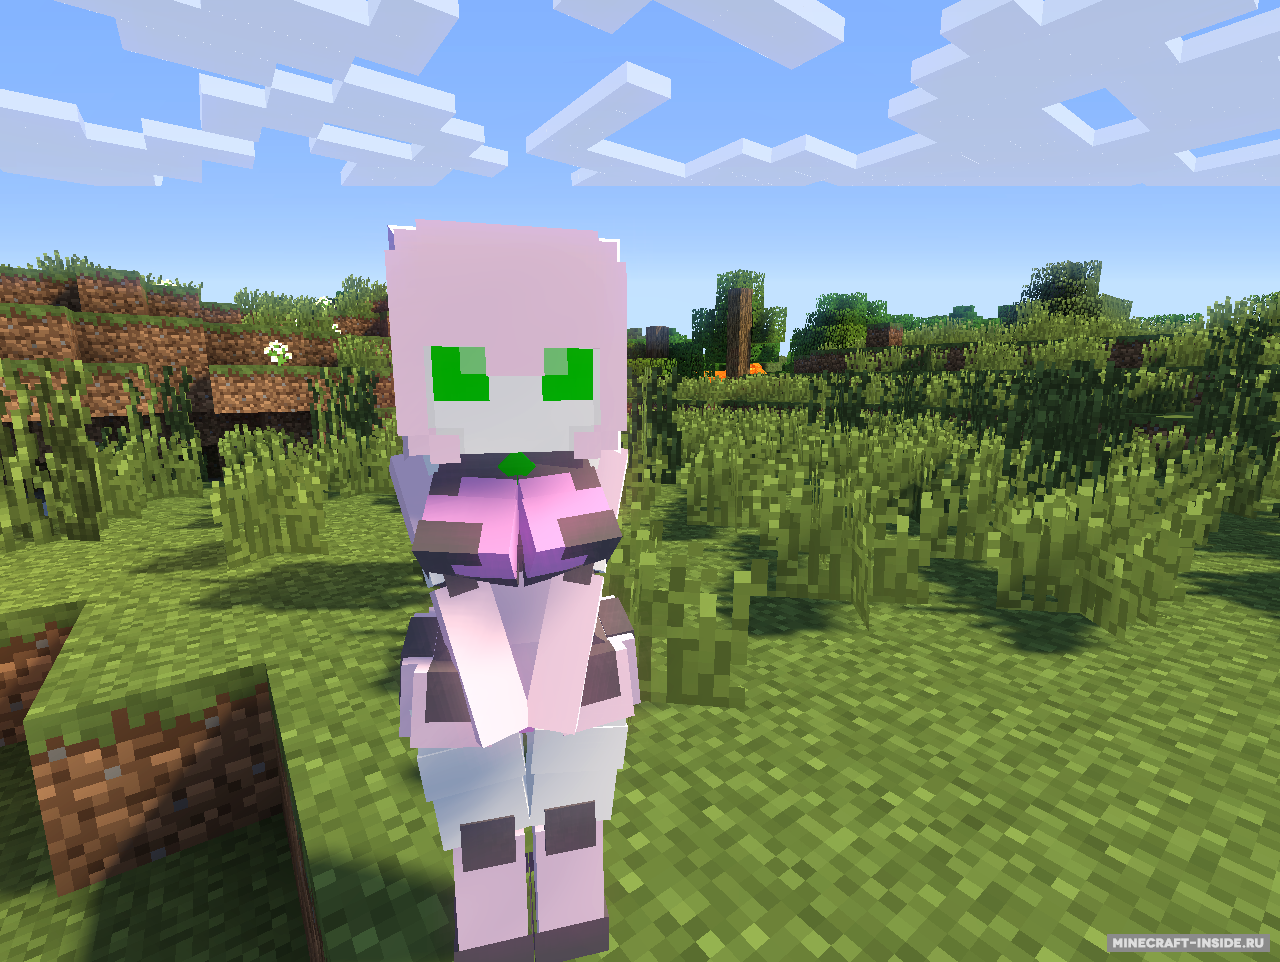 Lovelyrobot mod download minecraft forum-20768